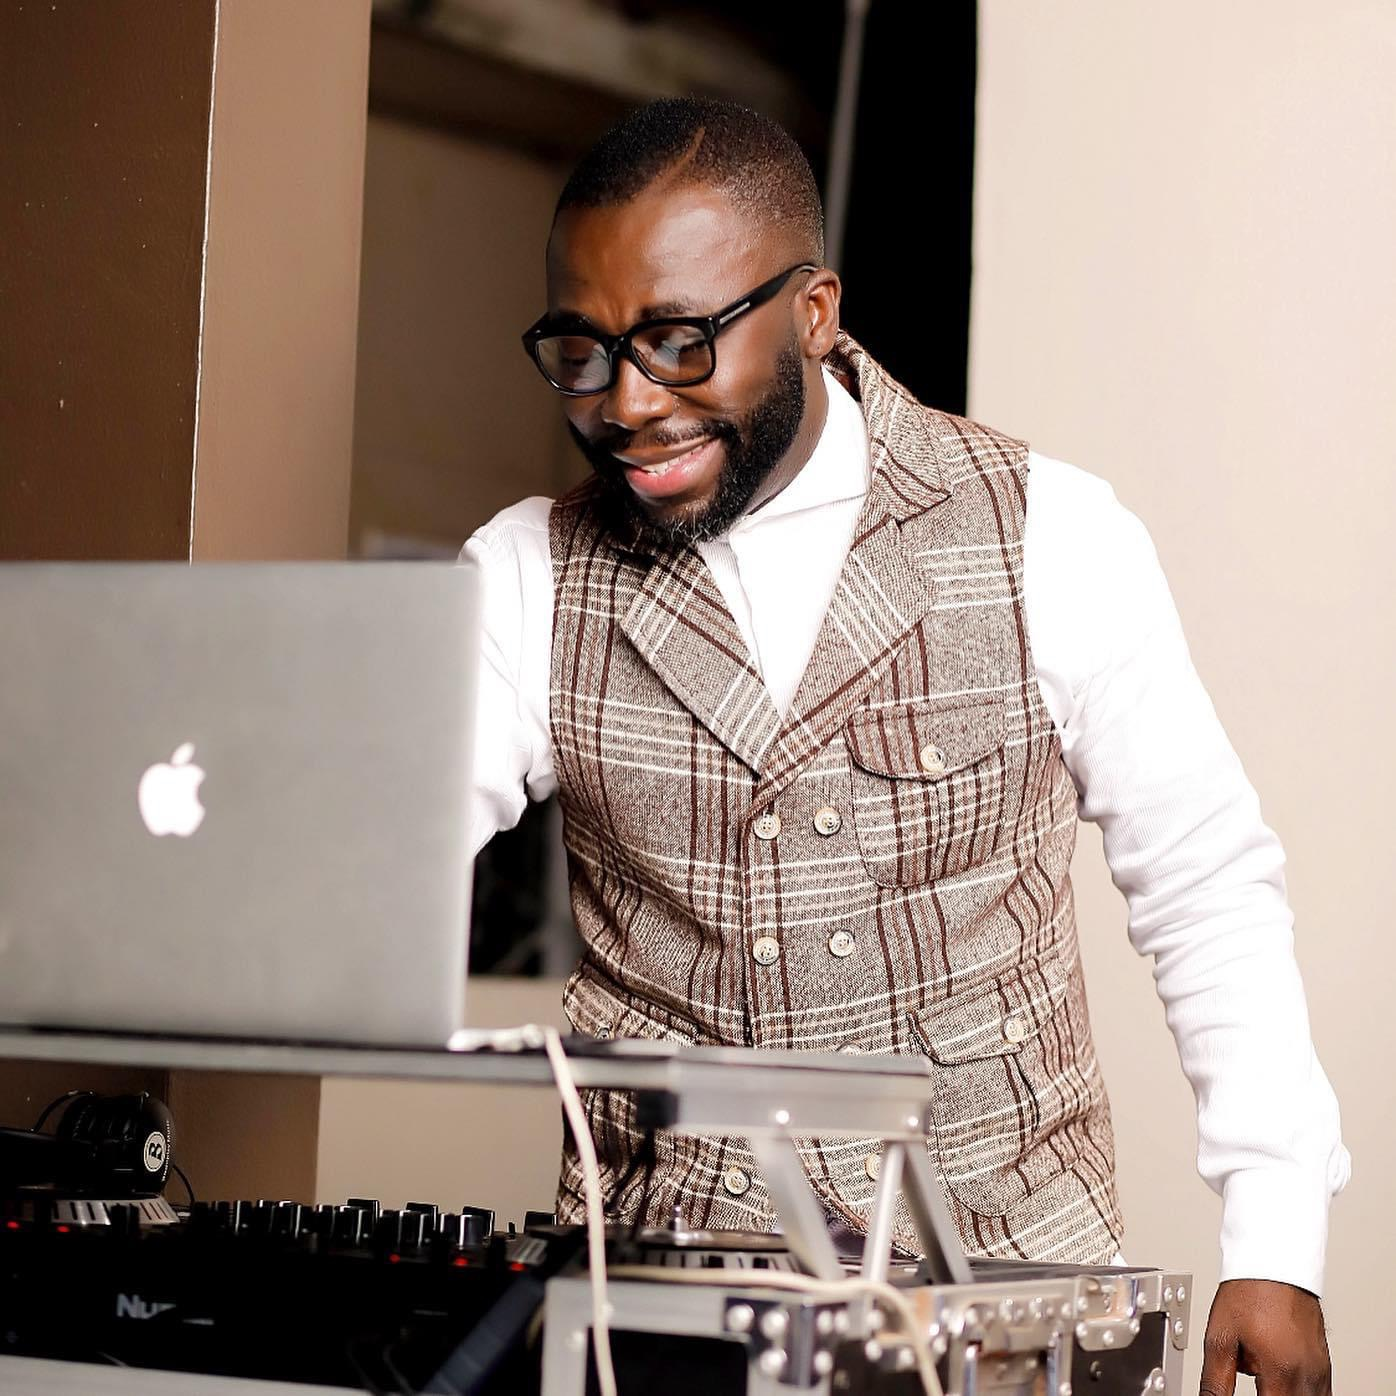 Obrafour Is No Match To Kumerican Rappers - Andy Dosty